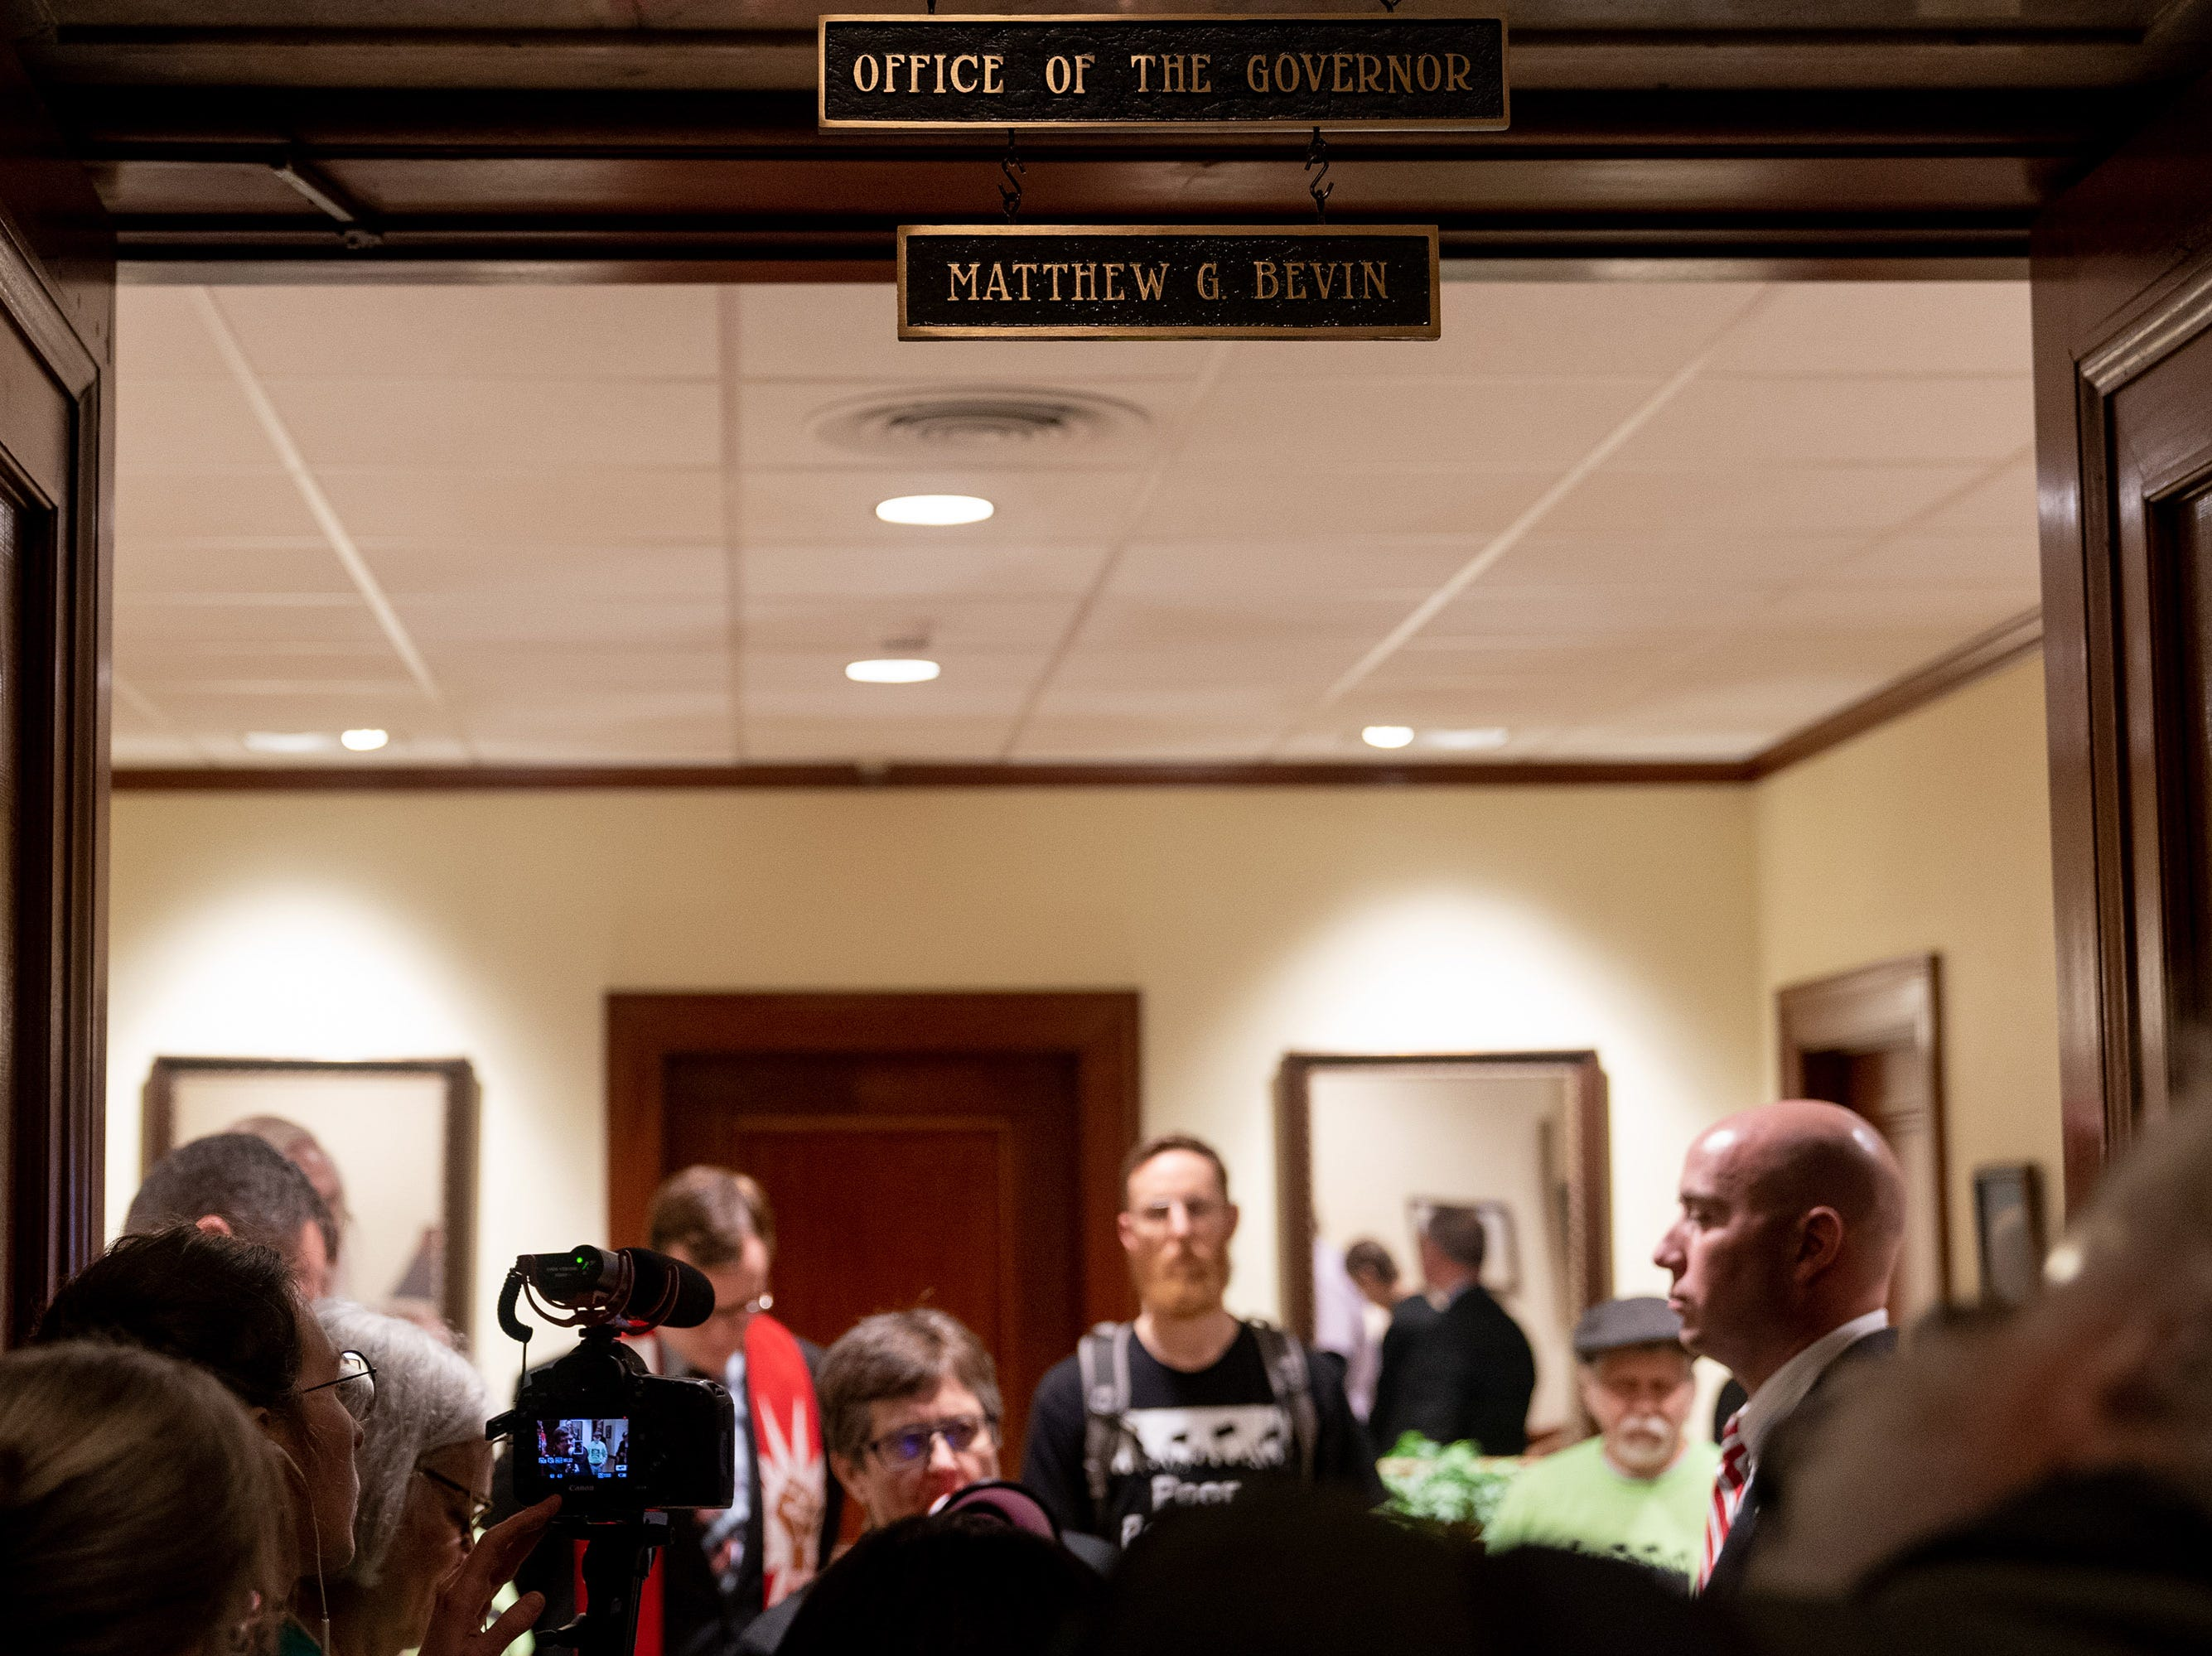 Members of the Kentucky's Poor People's Campaign gather and refuse to leave the office of Governor Matt Bevin in the capital building in Frankfort, Ky, Tuesday, Feb. 5, 2018.  The group left after the Governor agreed to meet with the group later that afternoon.